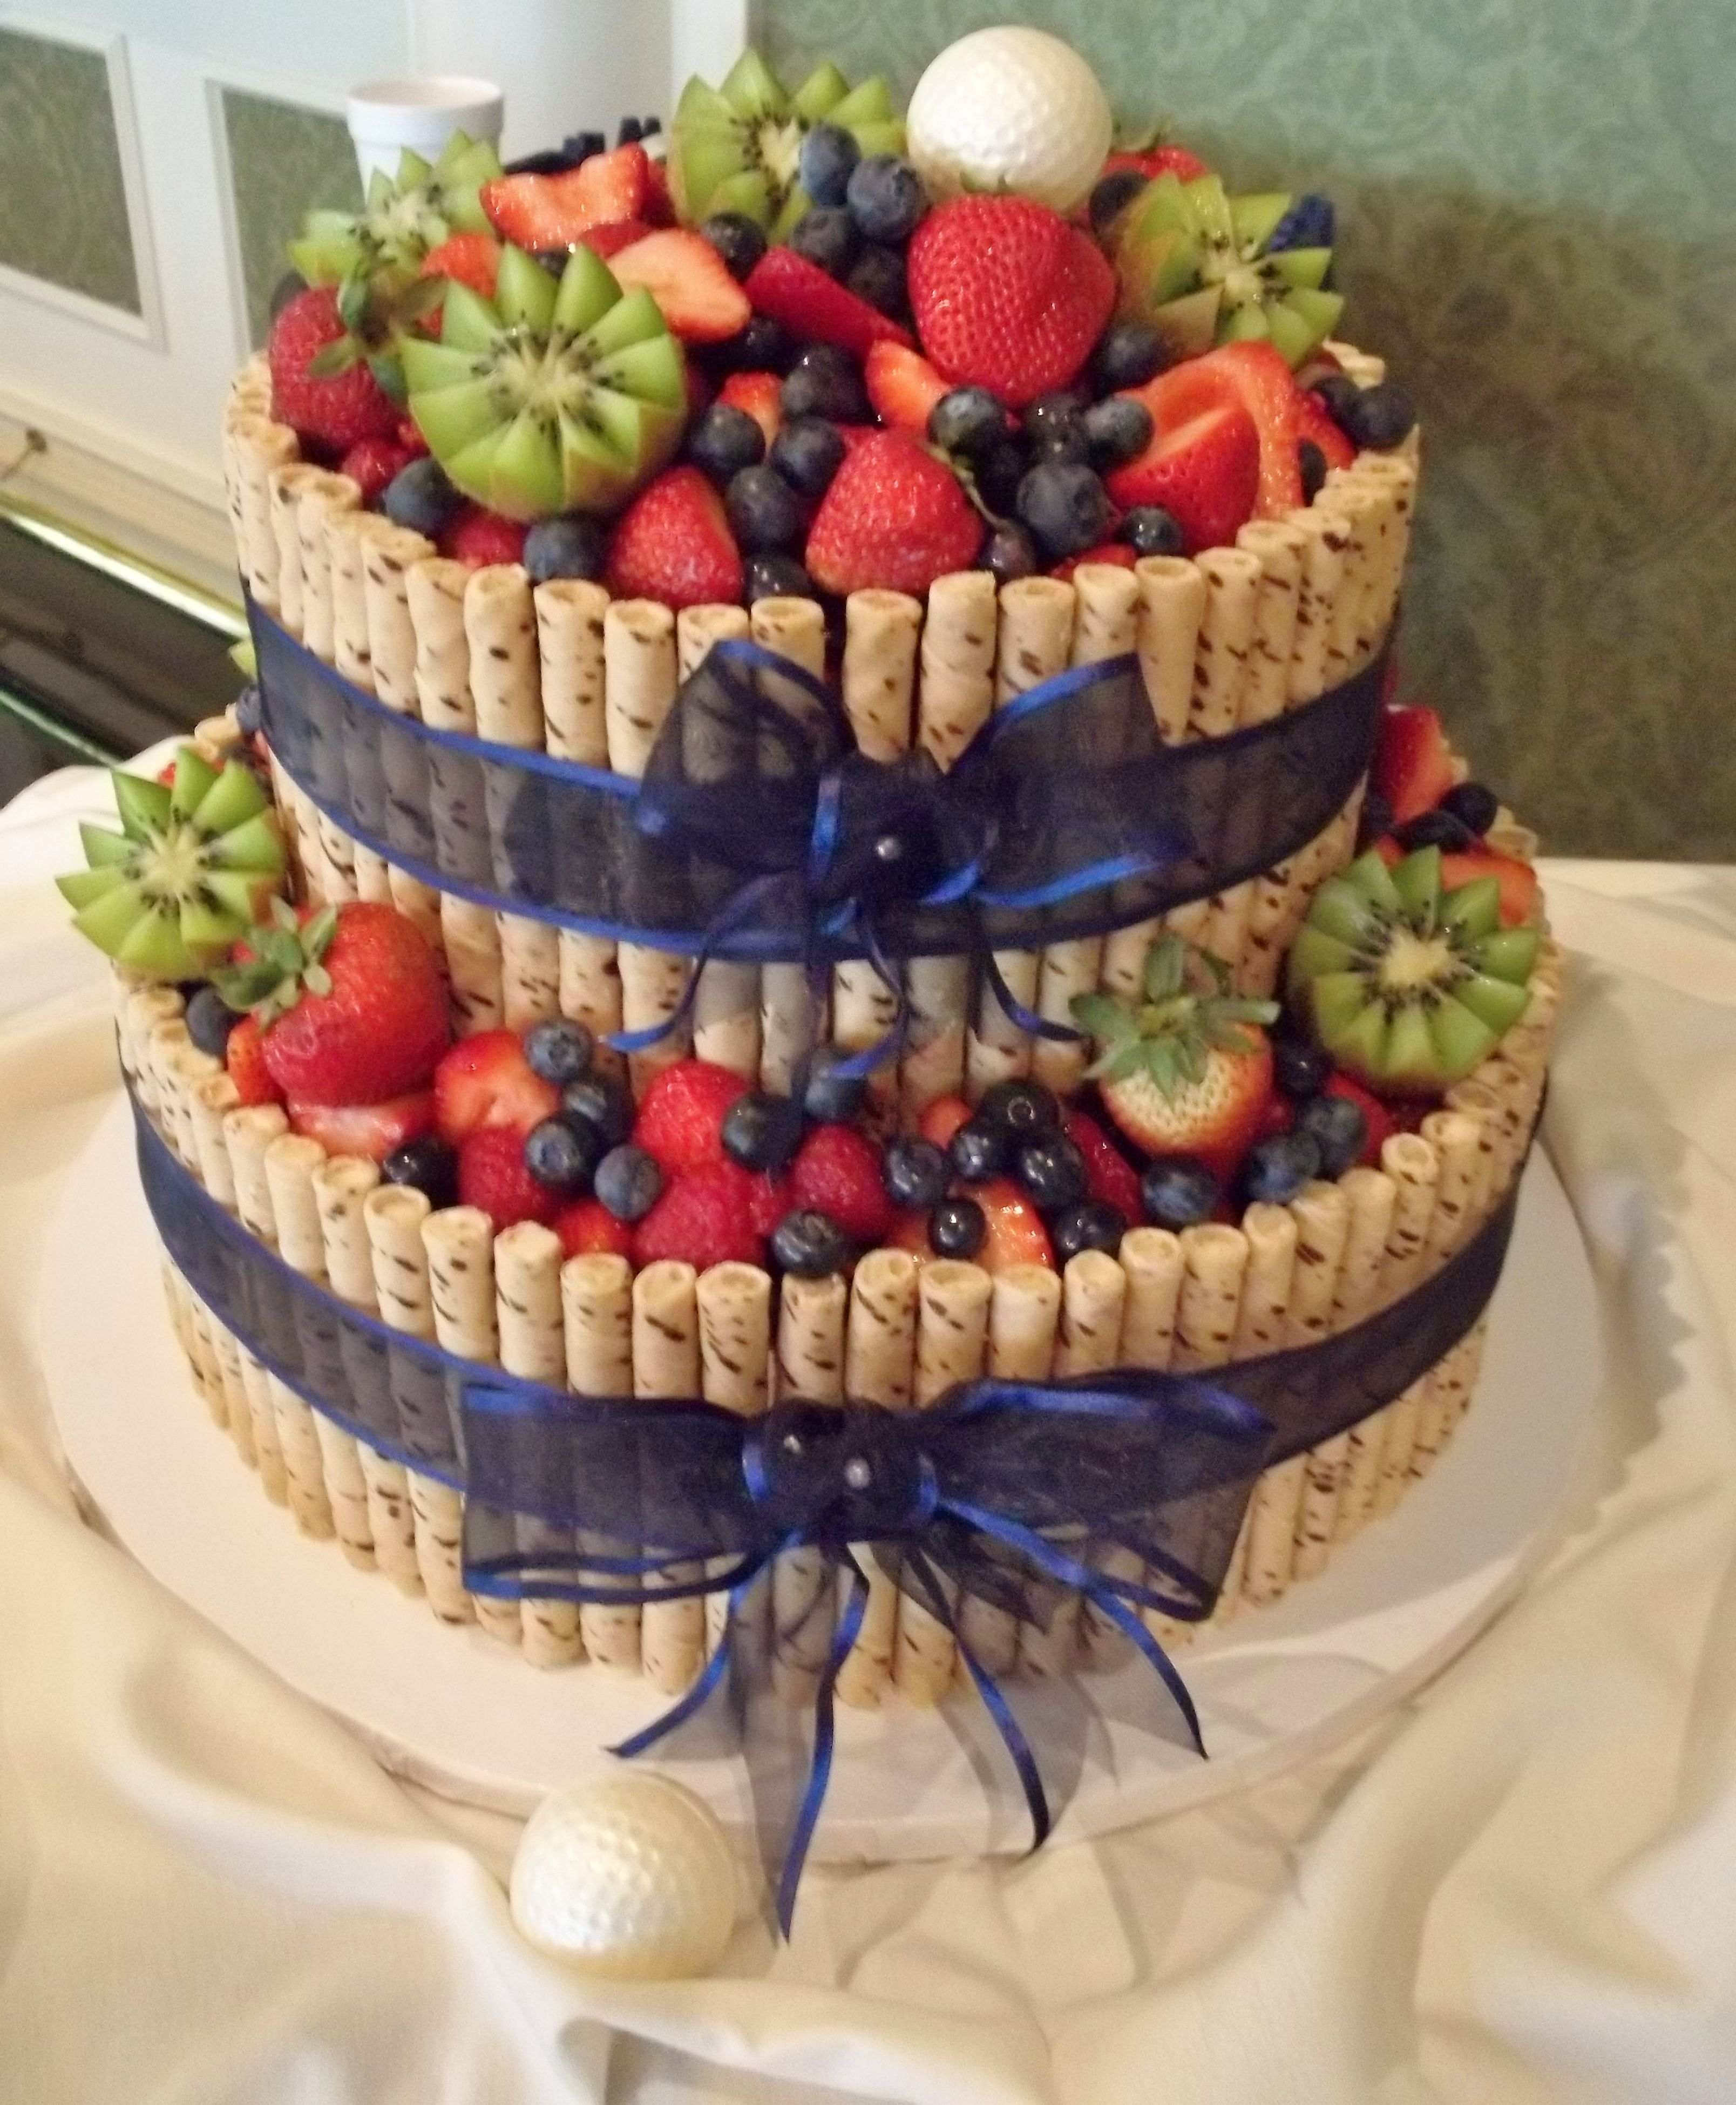 Vegan And Gluten Free Wedding Cake Ideas Alternative: Vegan Cake With Fresh Fruit...but That Just Looks Amazing